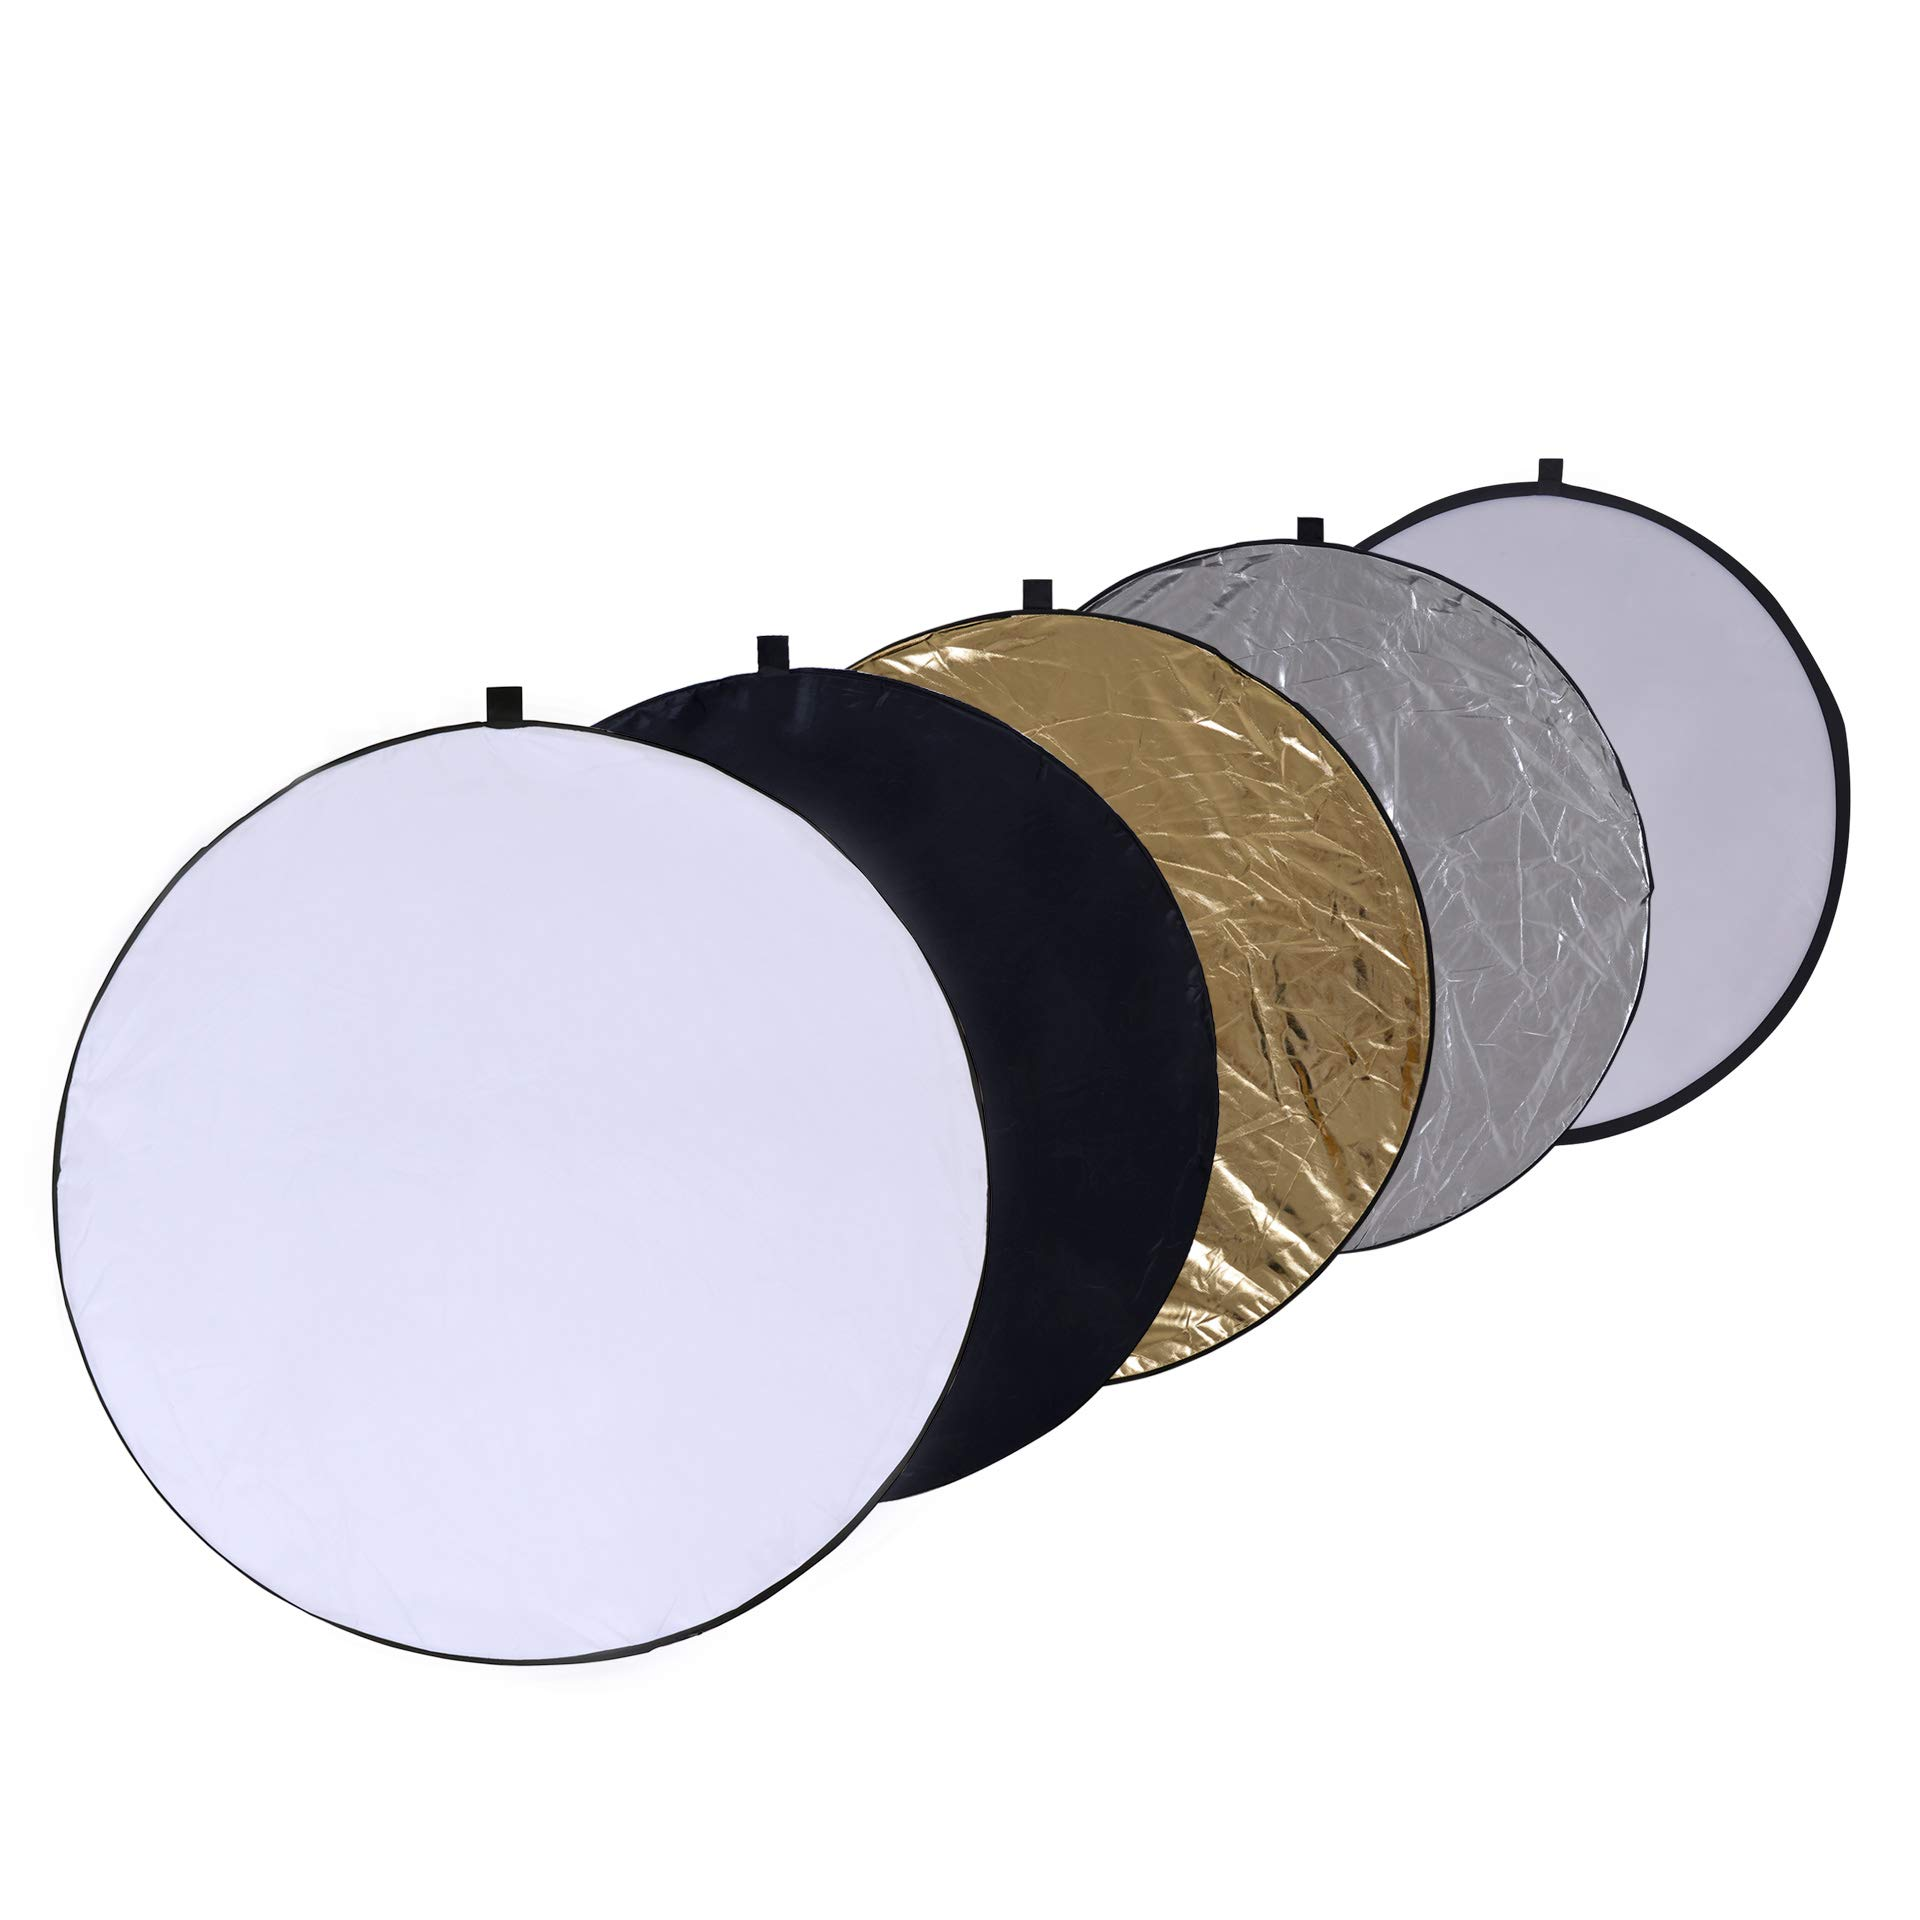 Round 32-inch / 80cm 5-in-1 Portable Collapsible Multi Disc Light Reflector Photography with Bag for Studio or Any Photography Situation-Silver, Gold, White, Translucent and Black